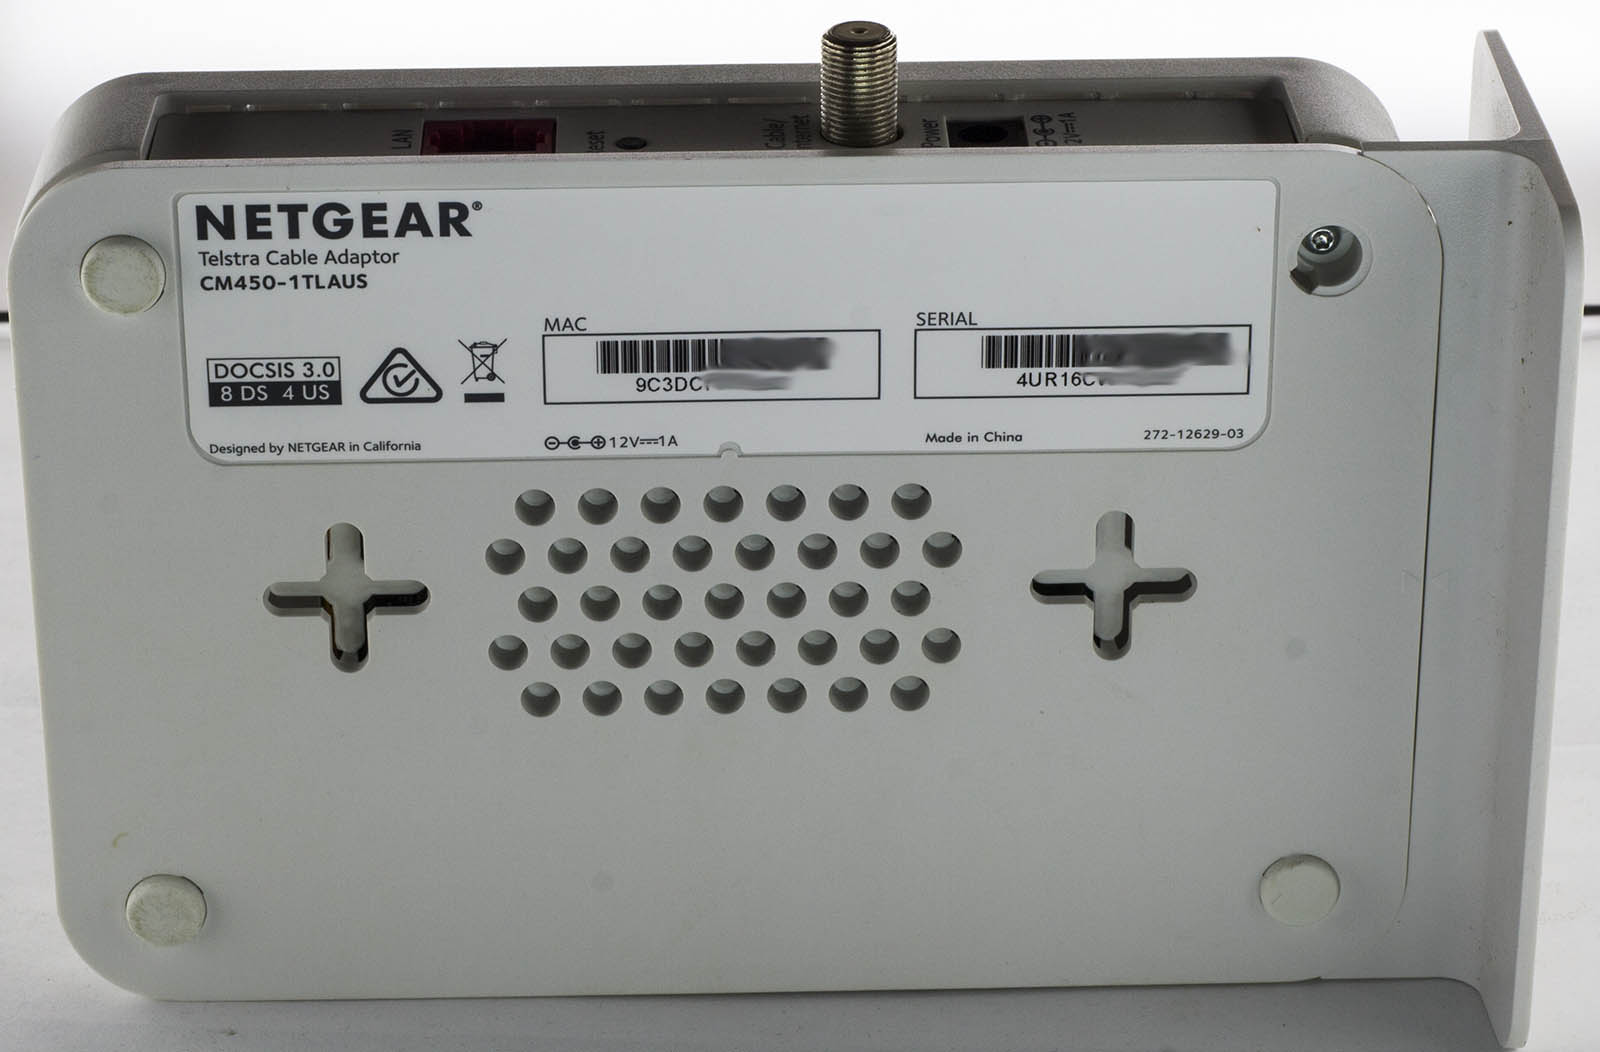 Inside the Netgear Telstra Cable Adapter (Dated 2016) « insideGadgets